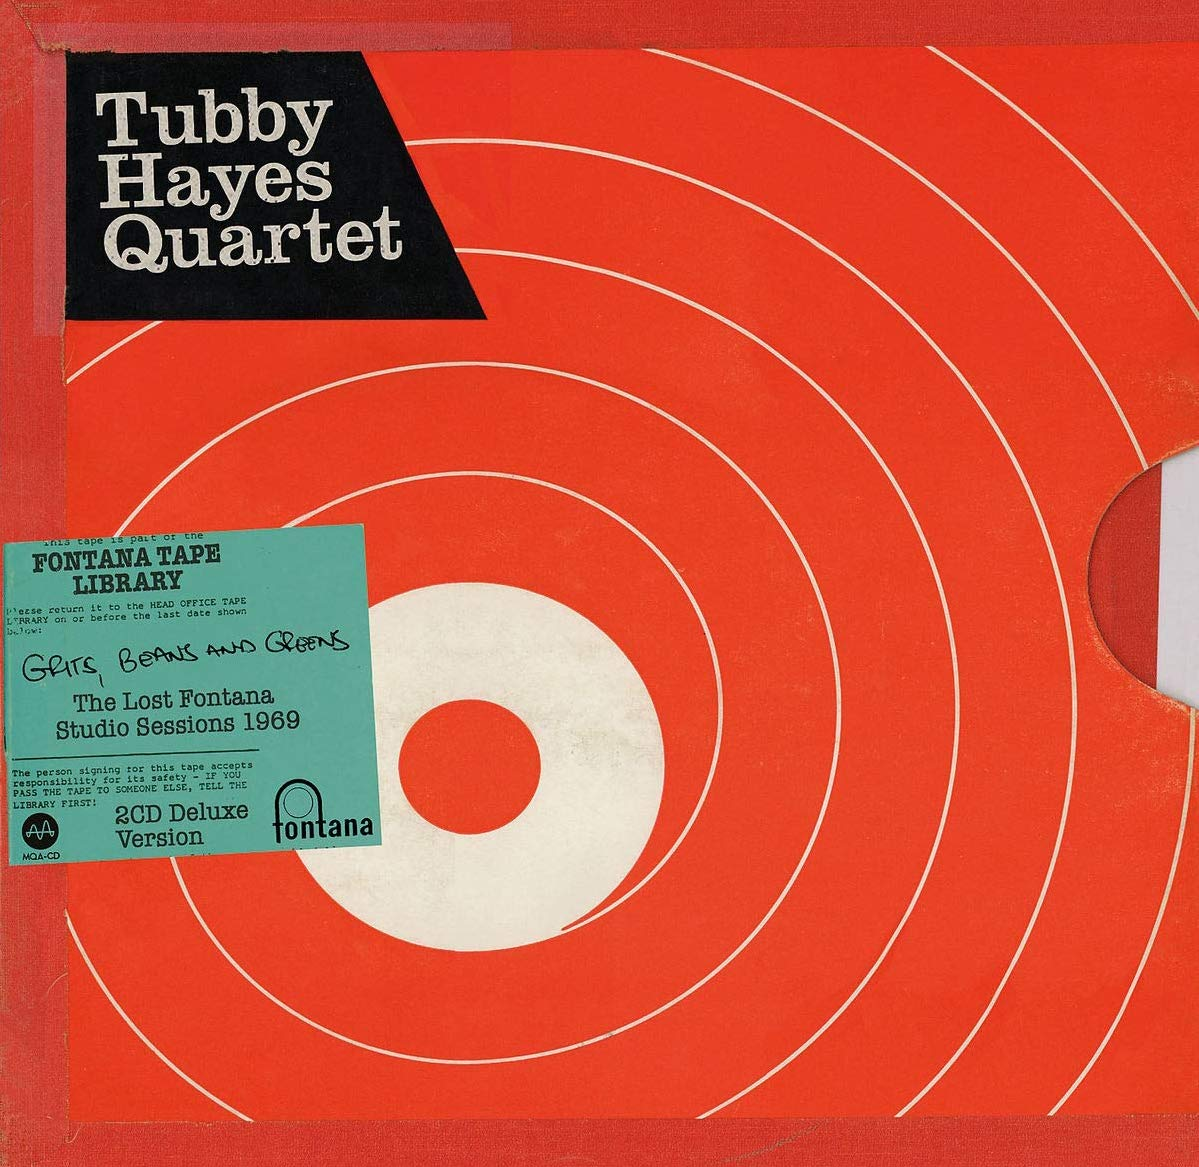 Tubby Hayes - Grits, Beans And Greens: The Lost Fontana Studio Sessions 1969 [2CD]